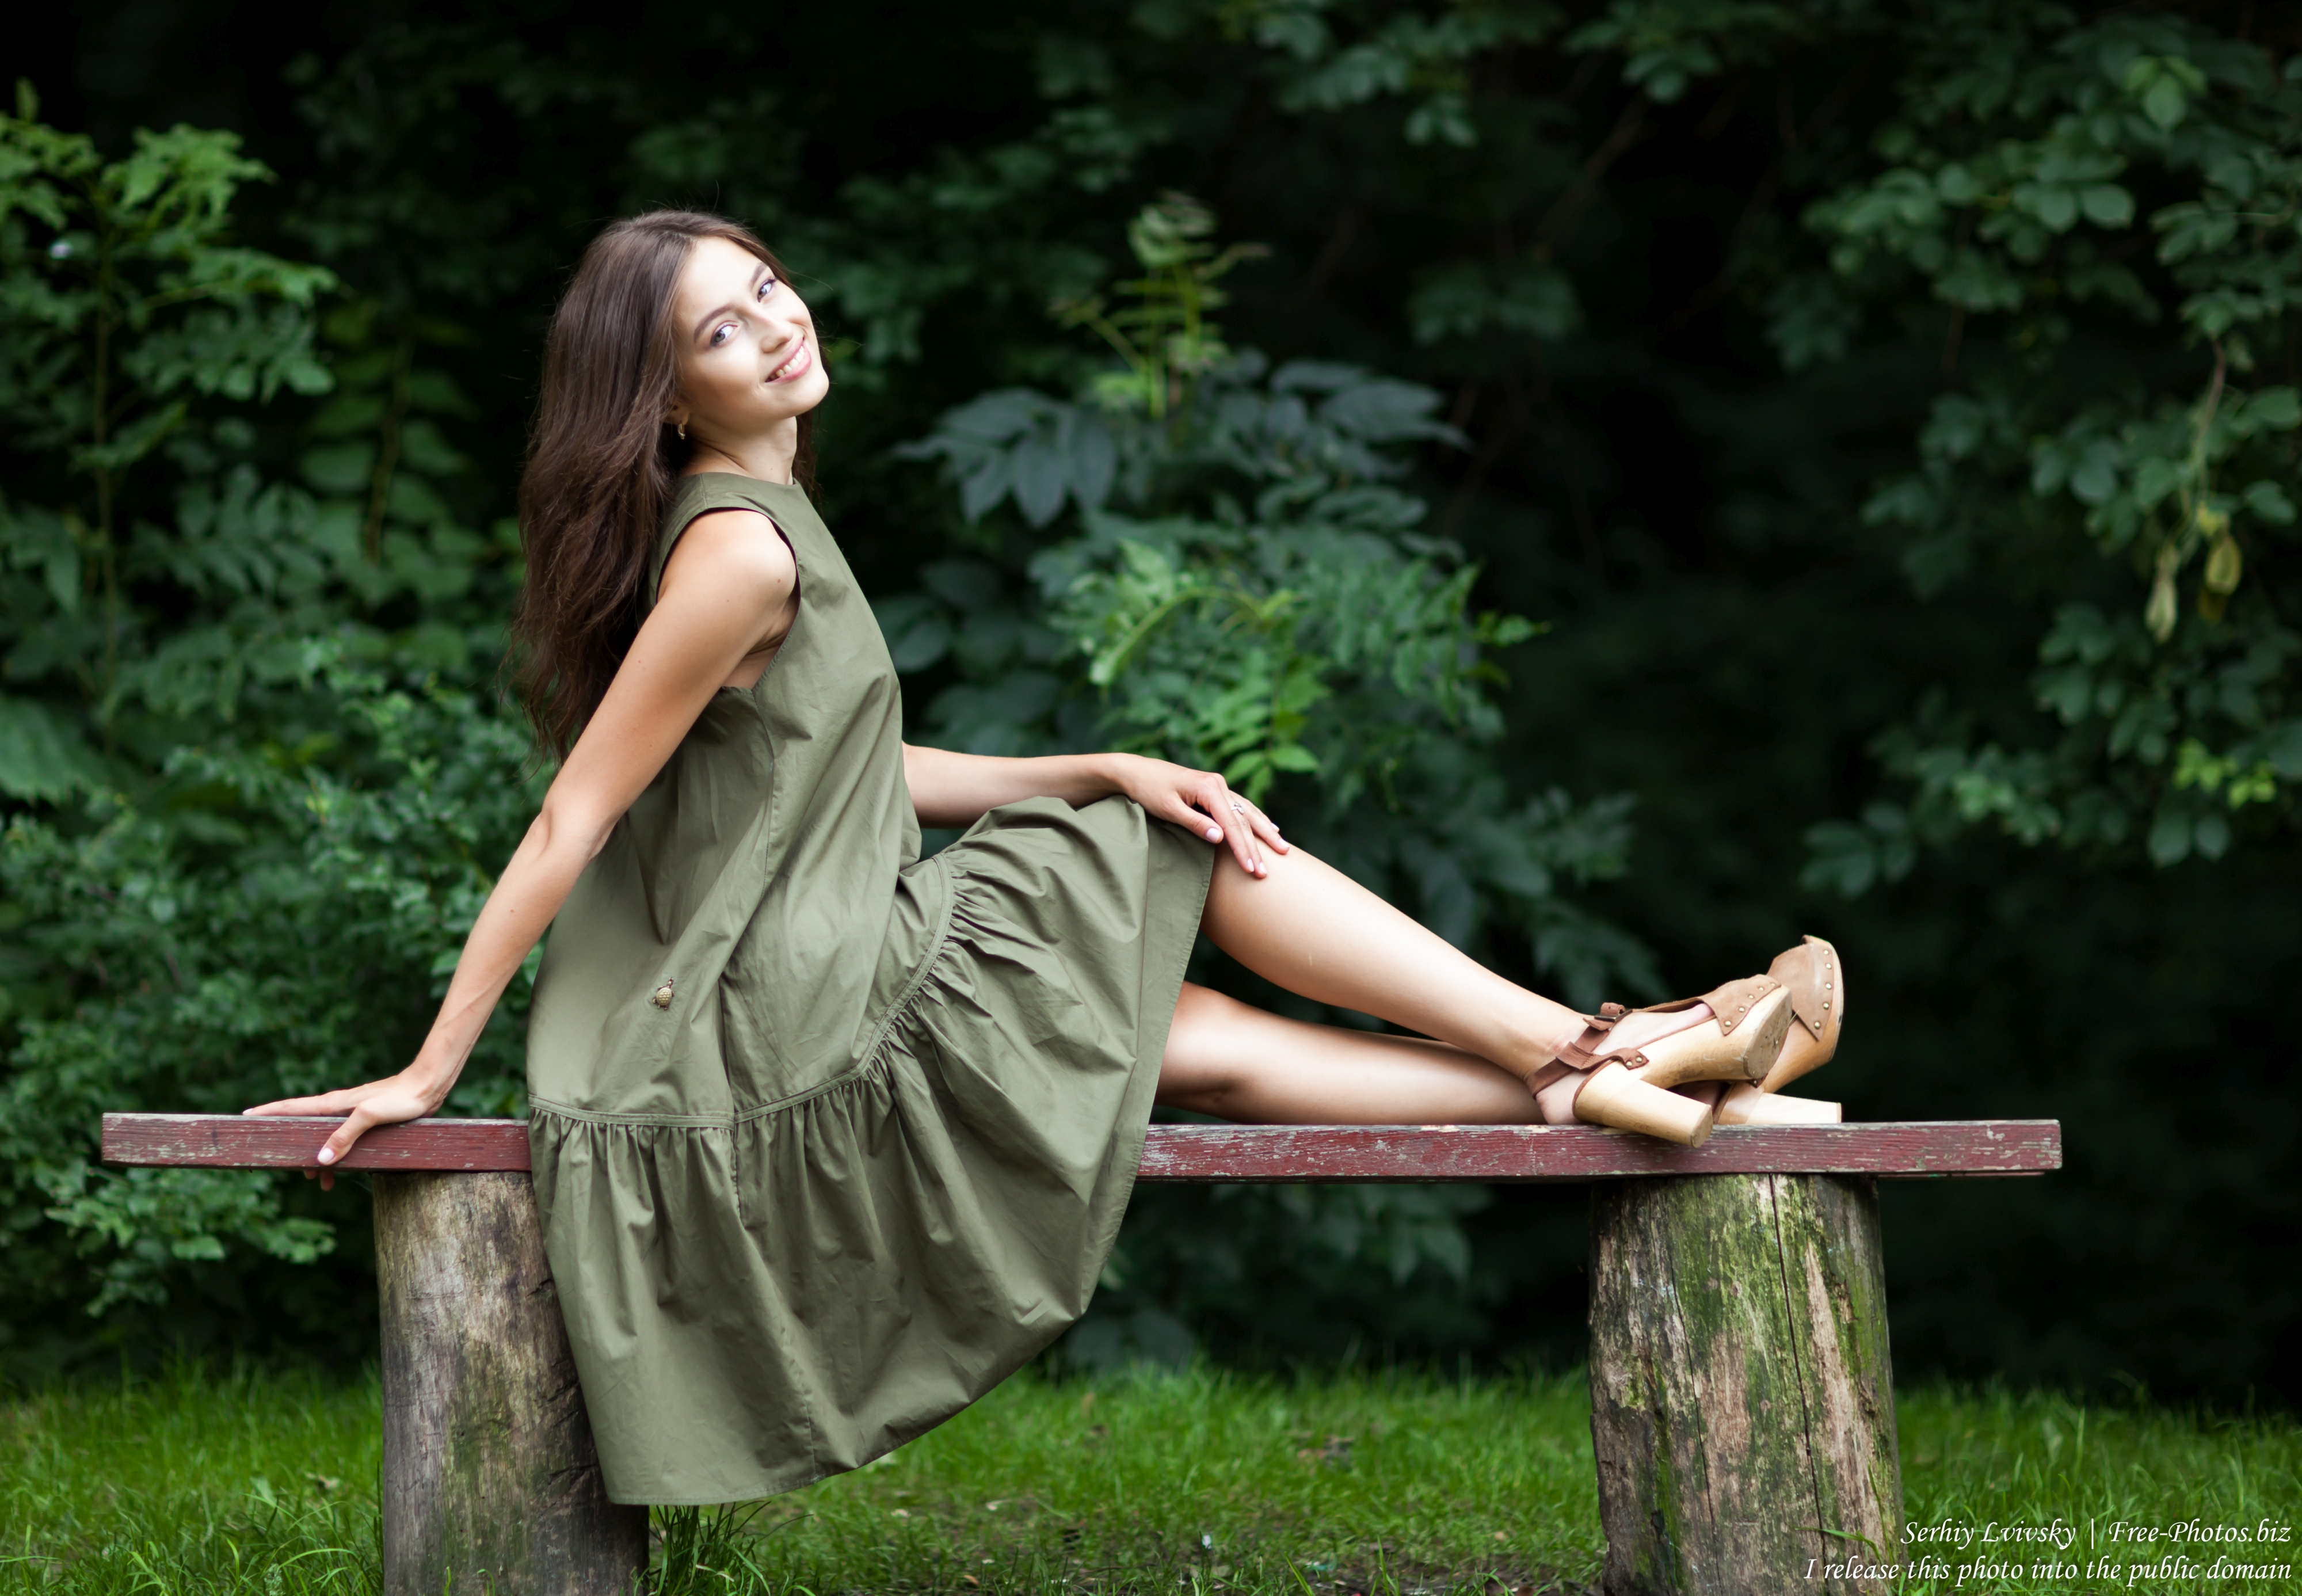 sophia_a_19-year-old_brunette_girl_photographed_by_serhiy_lvivsky_in_june_2018_27